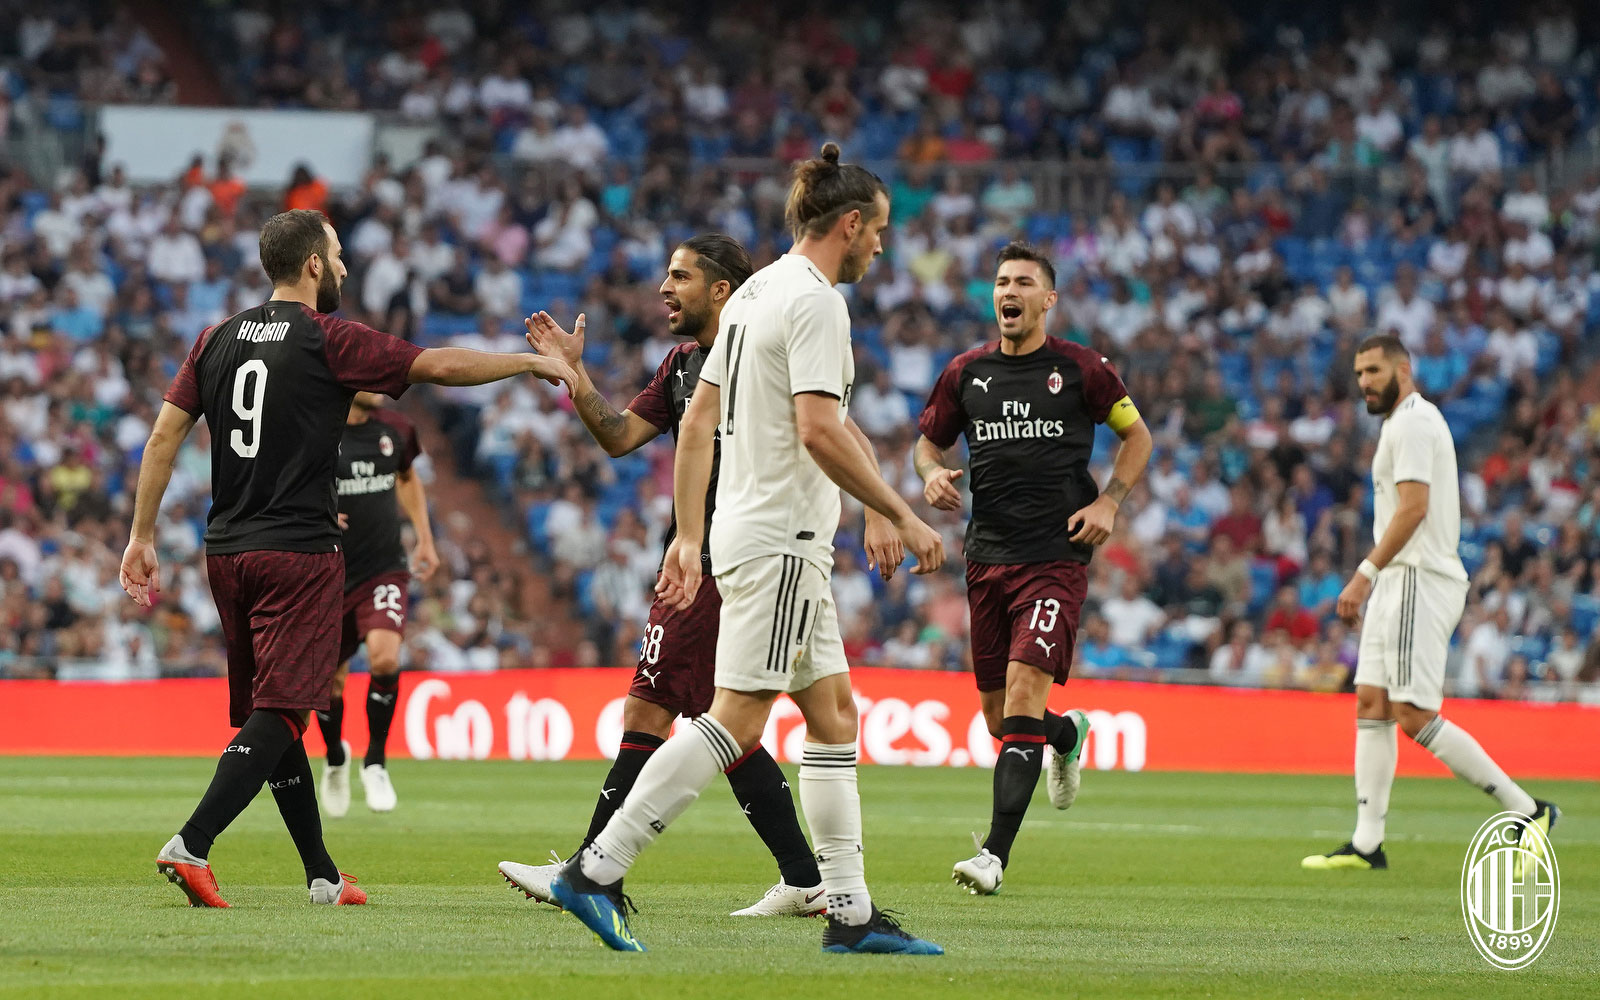 Gonzalo Higuain celebrating with Ricardo Rodriguez and Alessio Romagnoli during Real Madrid-Milan at Estadio Santiago Bernabéu on August 11, 2018. (@acmilan.com)